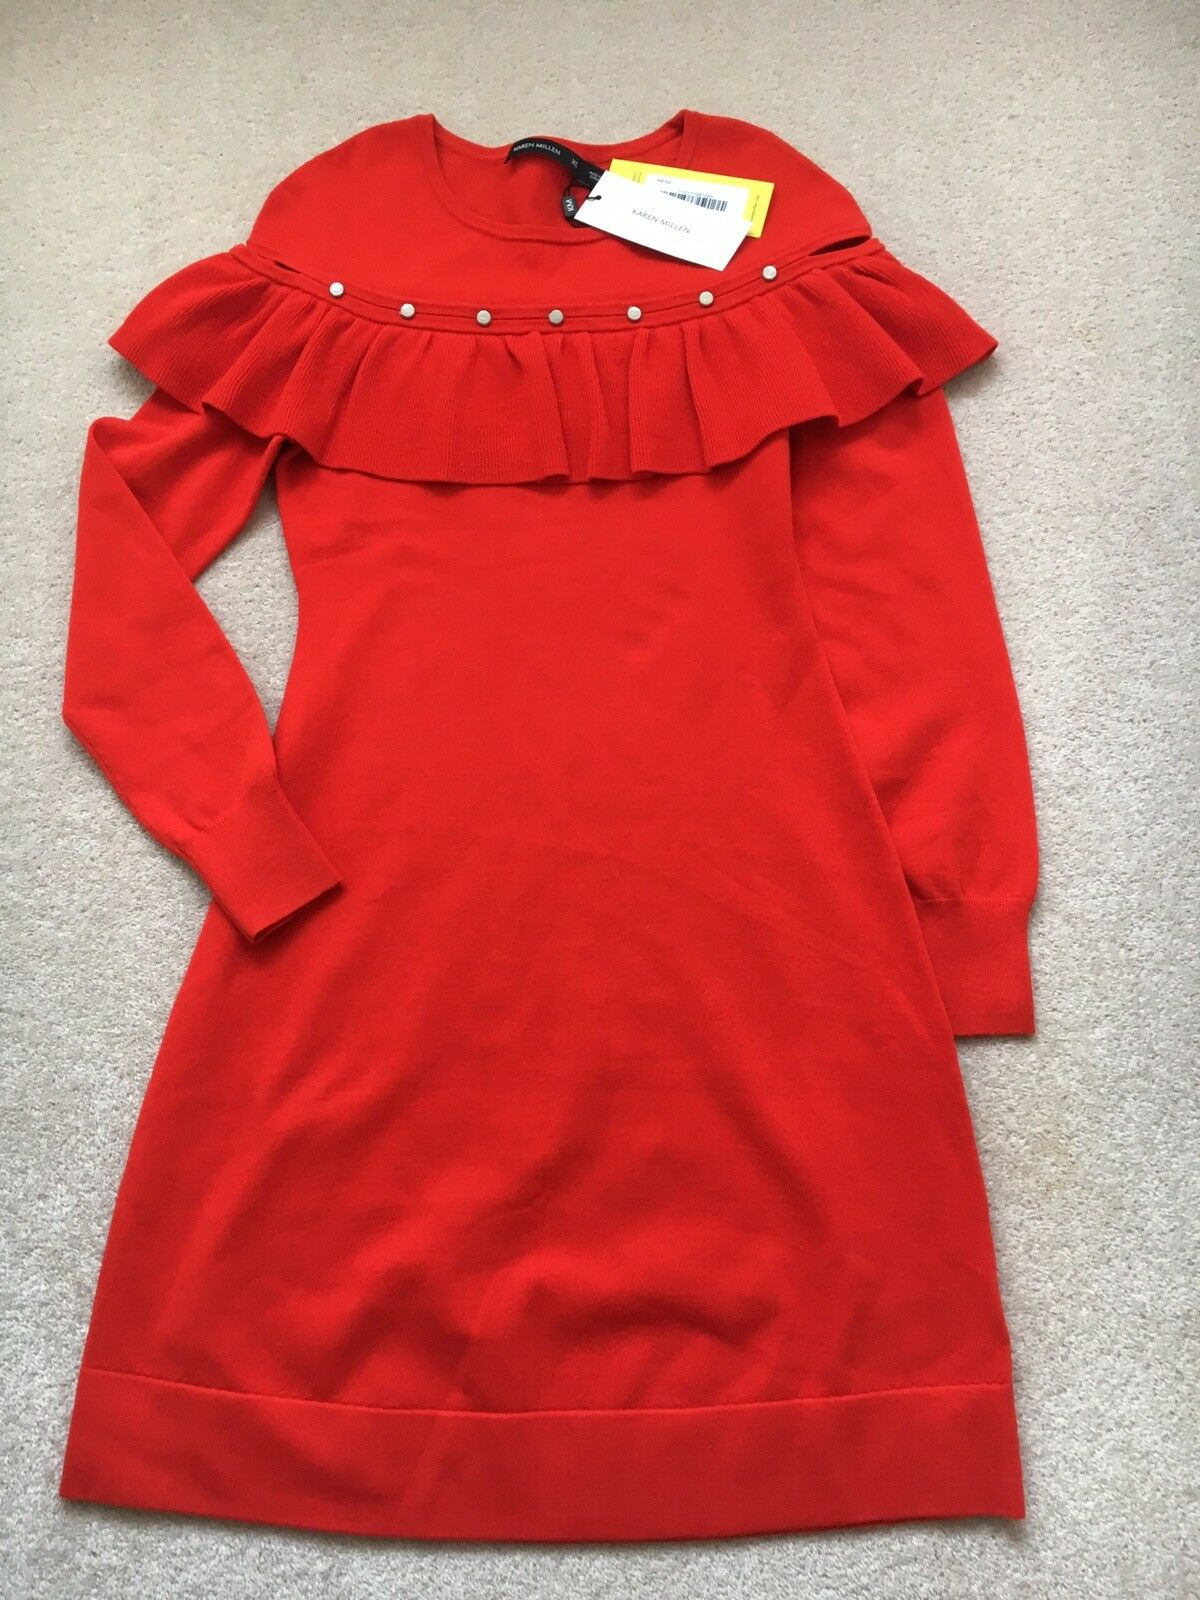 Karen Millen Red Red Red Knitted Dress Frill And Stud Detail Size XS Size 6 - 8 BNWTs 3382ed